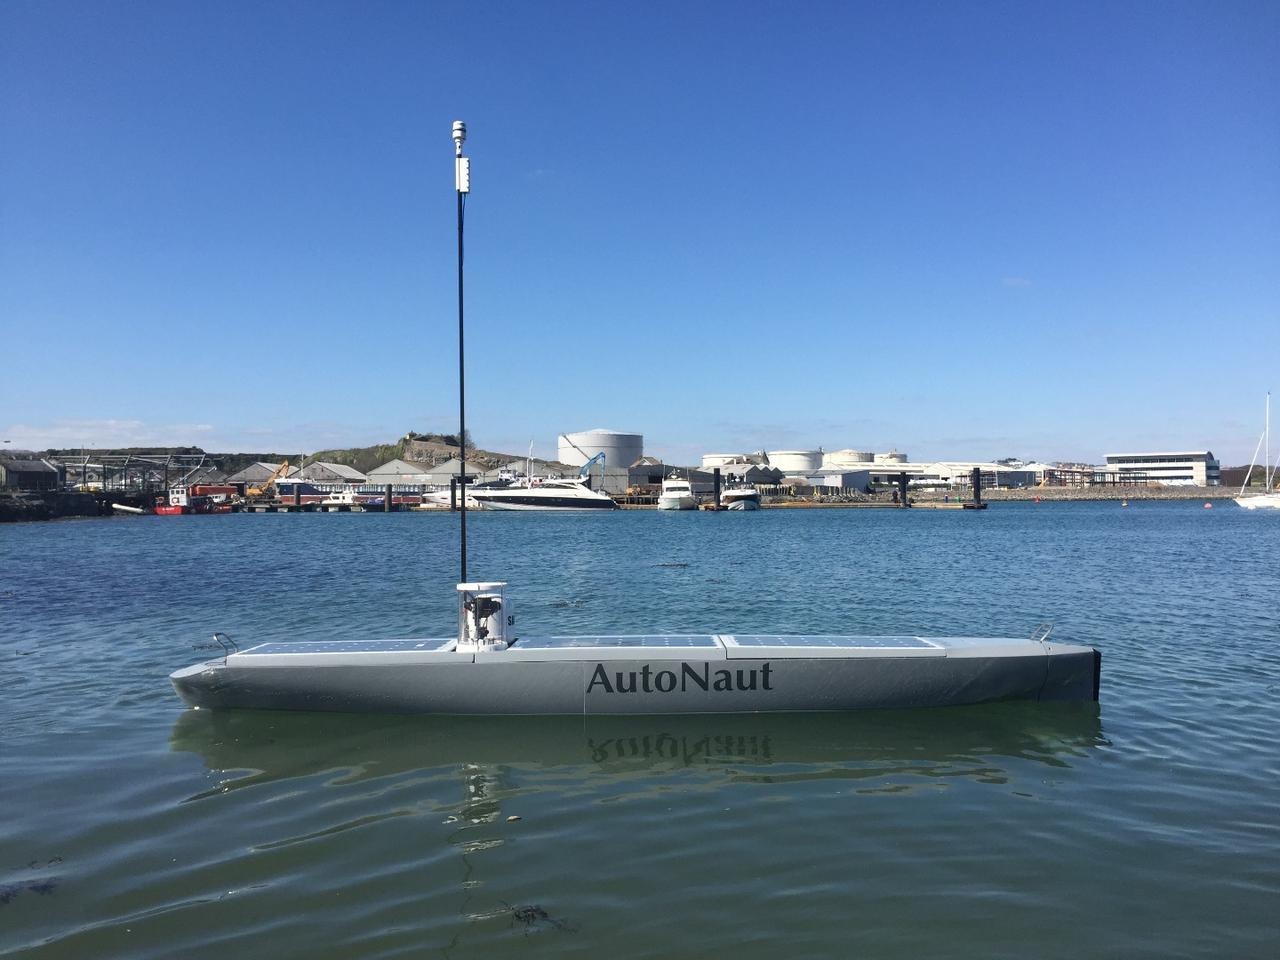 The AutoNaut unmanned surface vessel has so far been sent on missions for NATO, the Royal Navy and the UK's Met Office